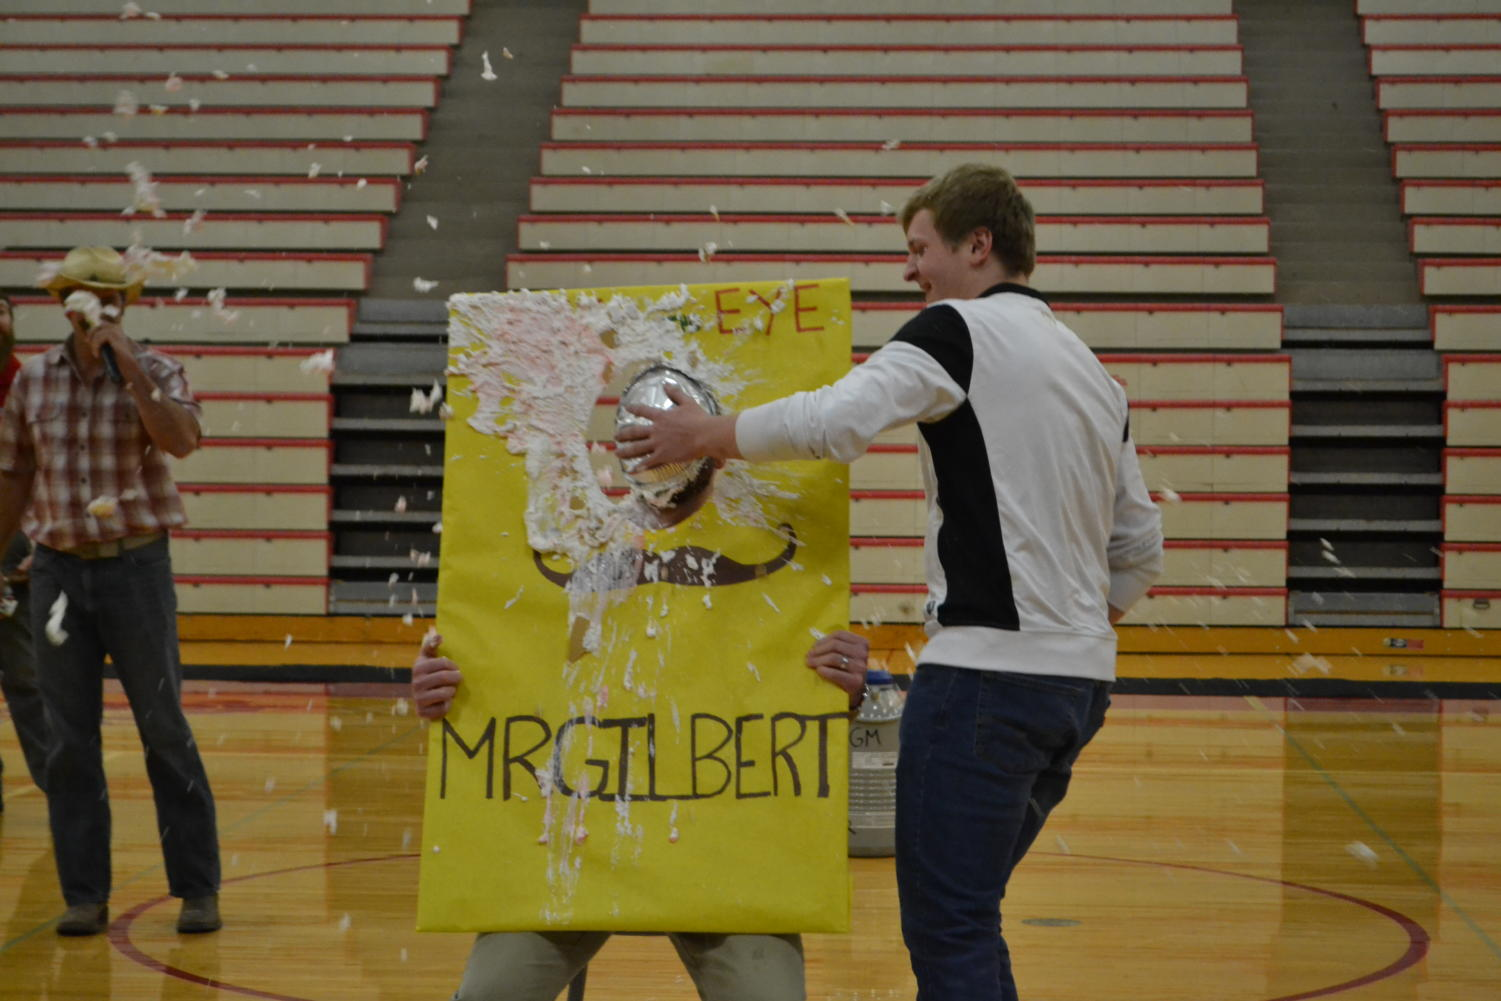 Ben Rea smacks a pie in Mr. Gilbert's face in the name of charity.